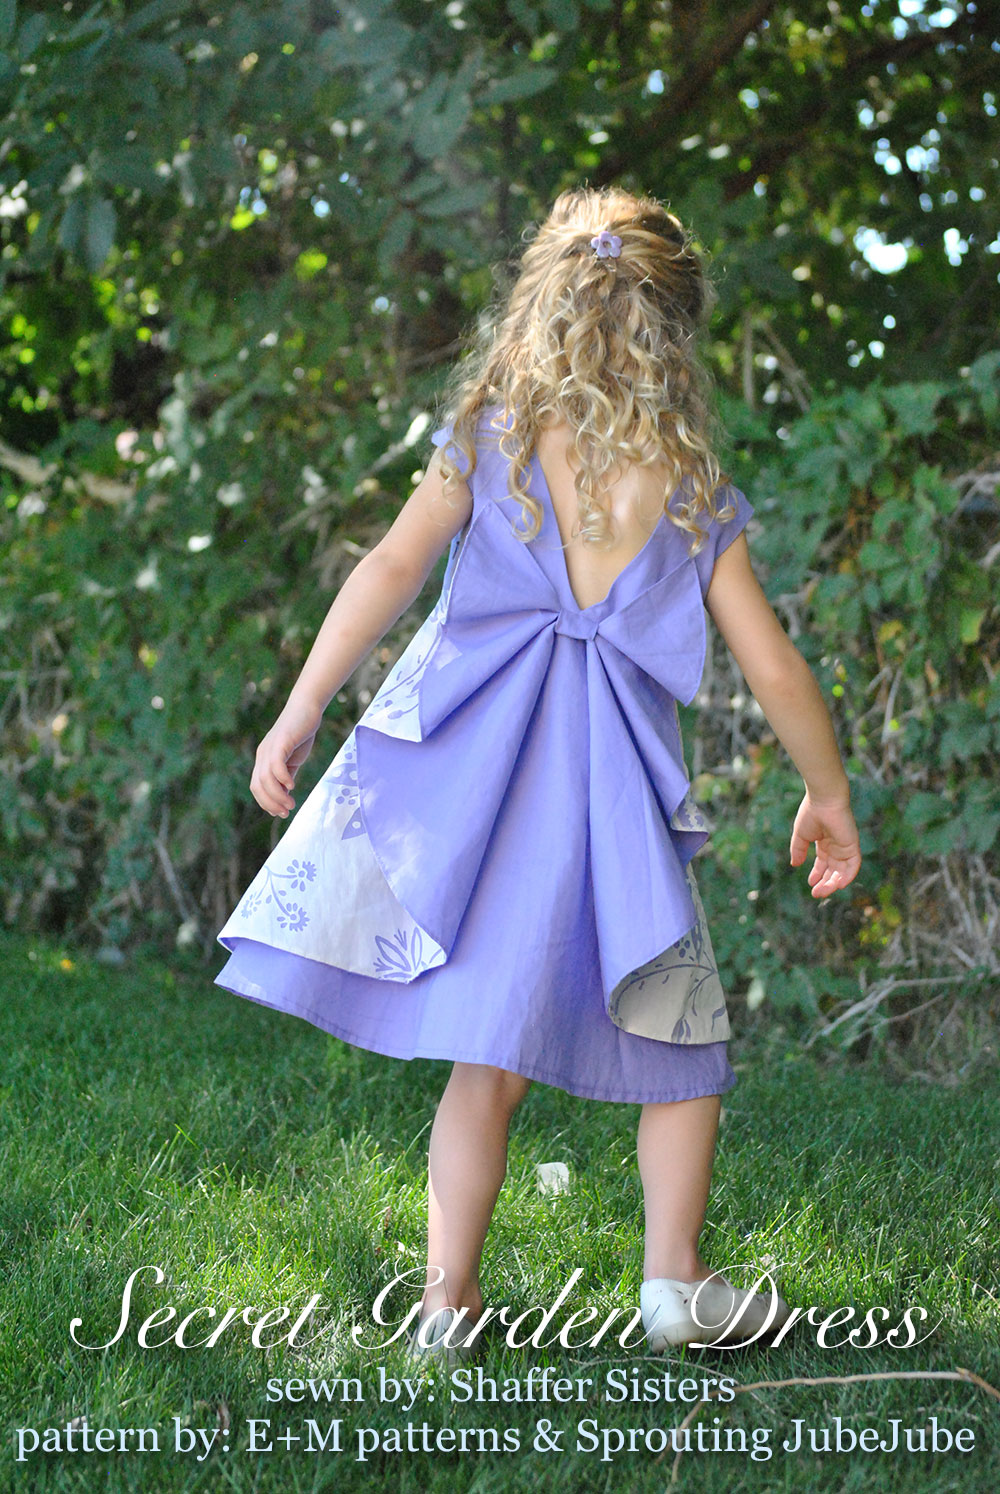 Secret Garden: Secret Garden Dress Pattern Review, Giveaway & Discount